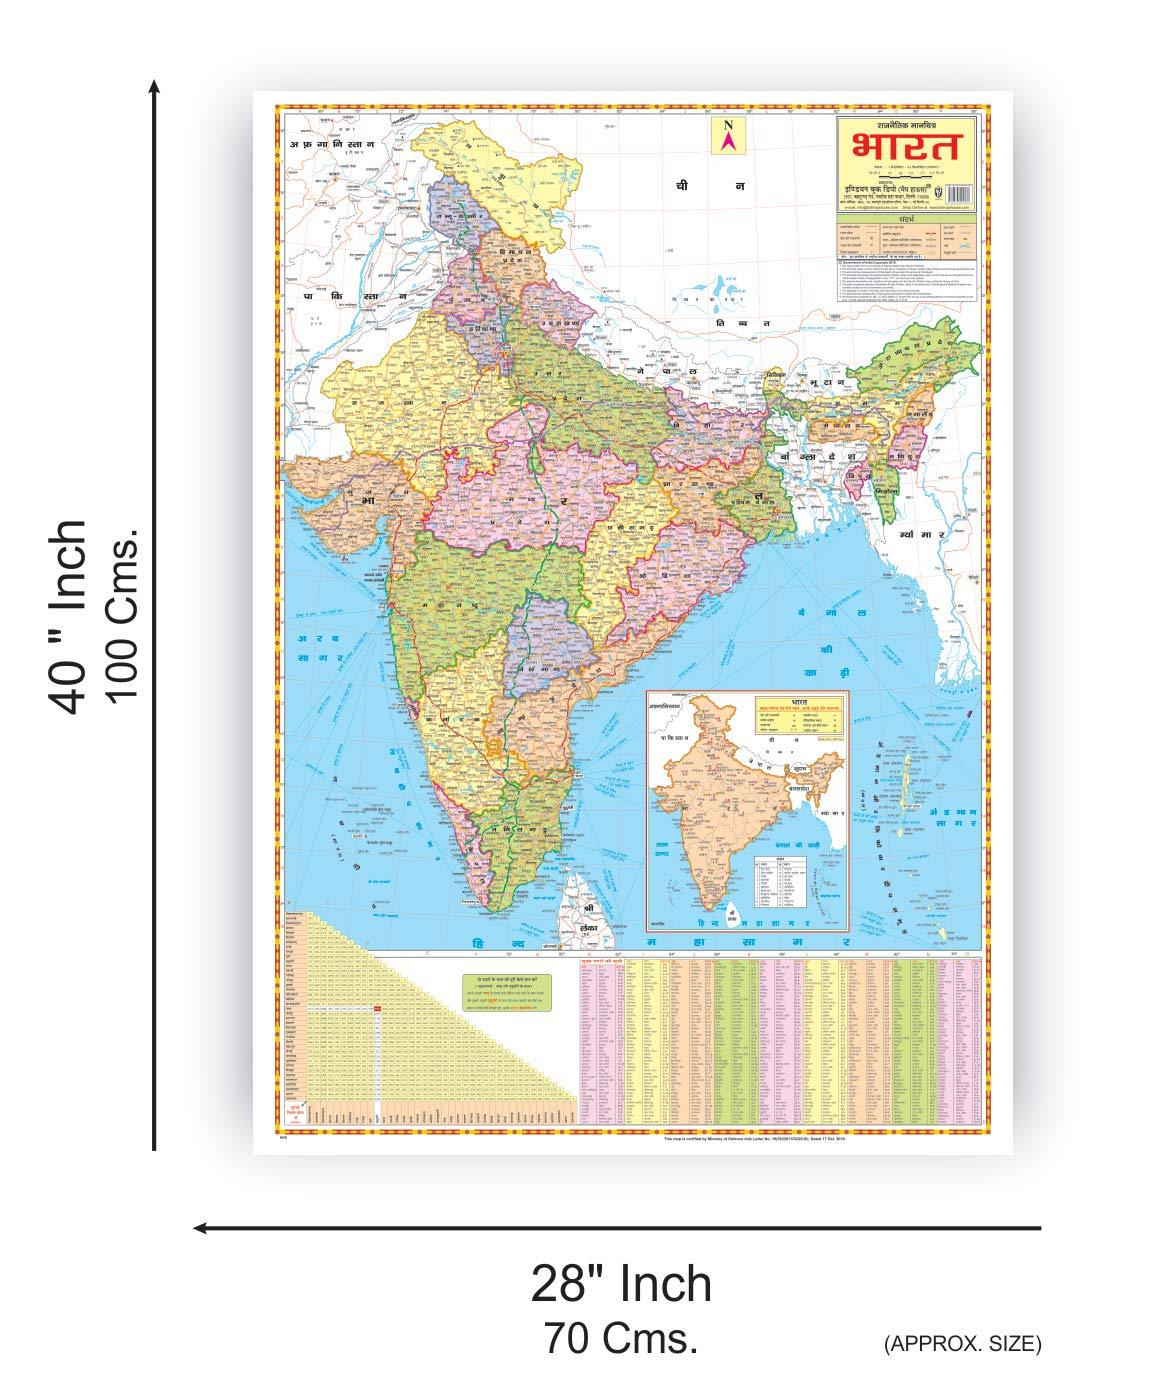 INDIA POLITICAL (HINDI) SIZE 70 X 100 CMS - Indian Book Depot (Map House)